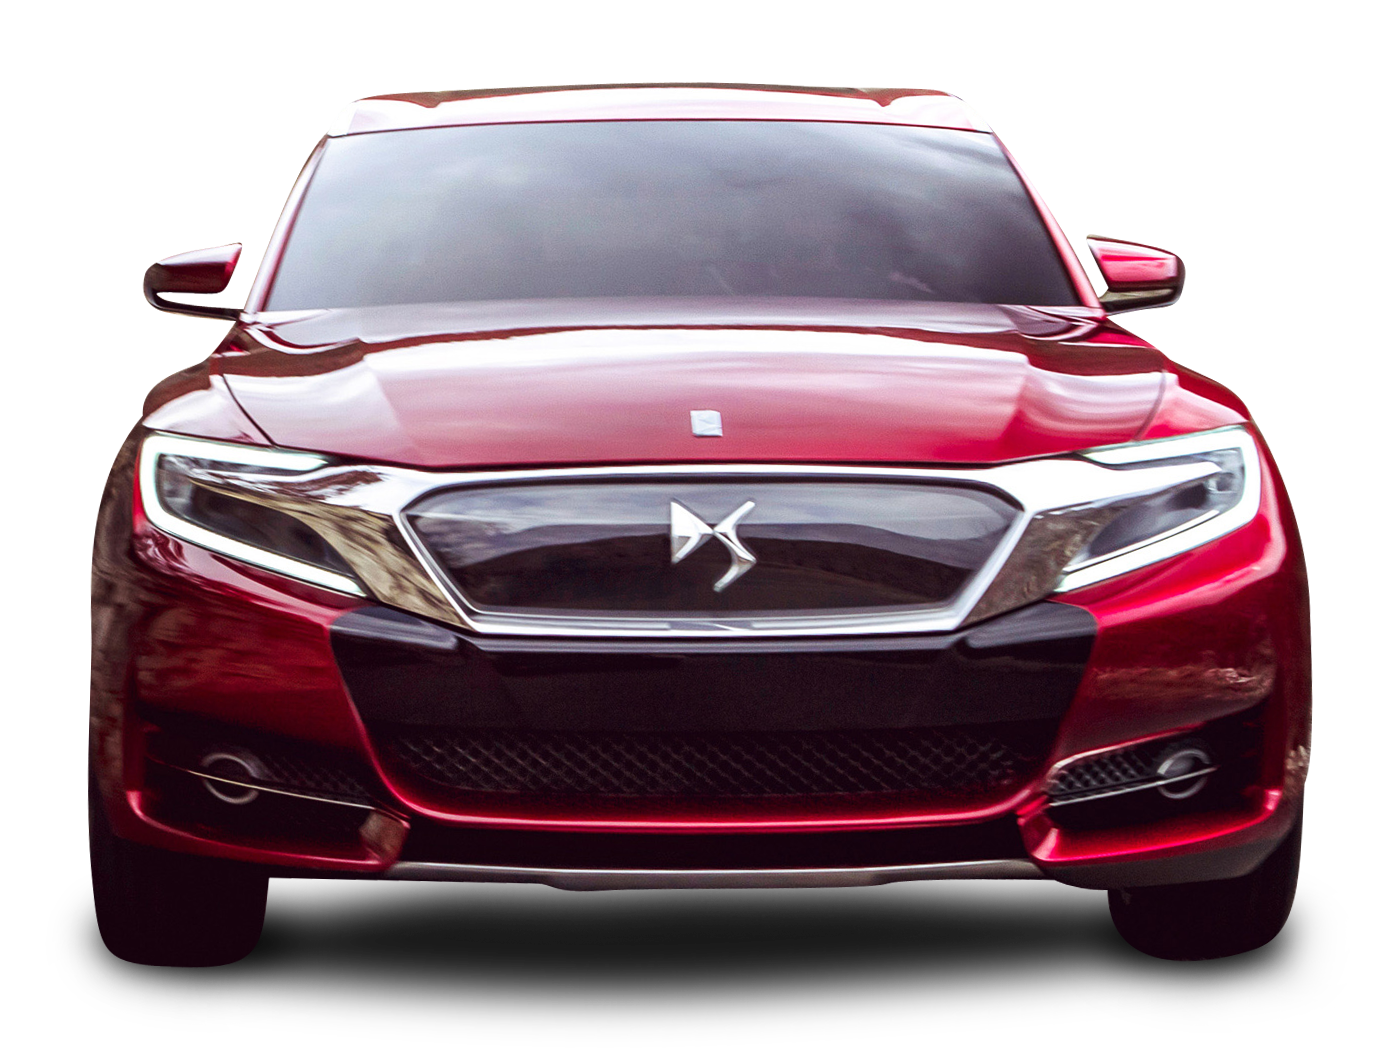 Front Of Car Png - Red Citroen DS Wild Rubis Front View Car PNG Image - PngPix